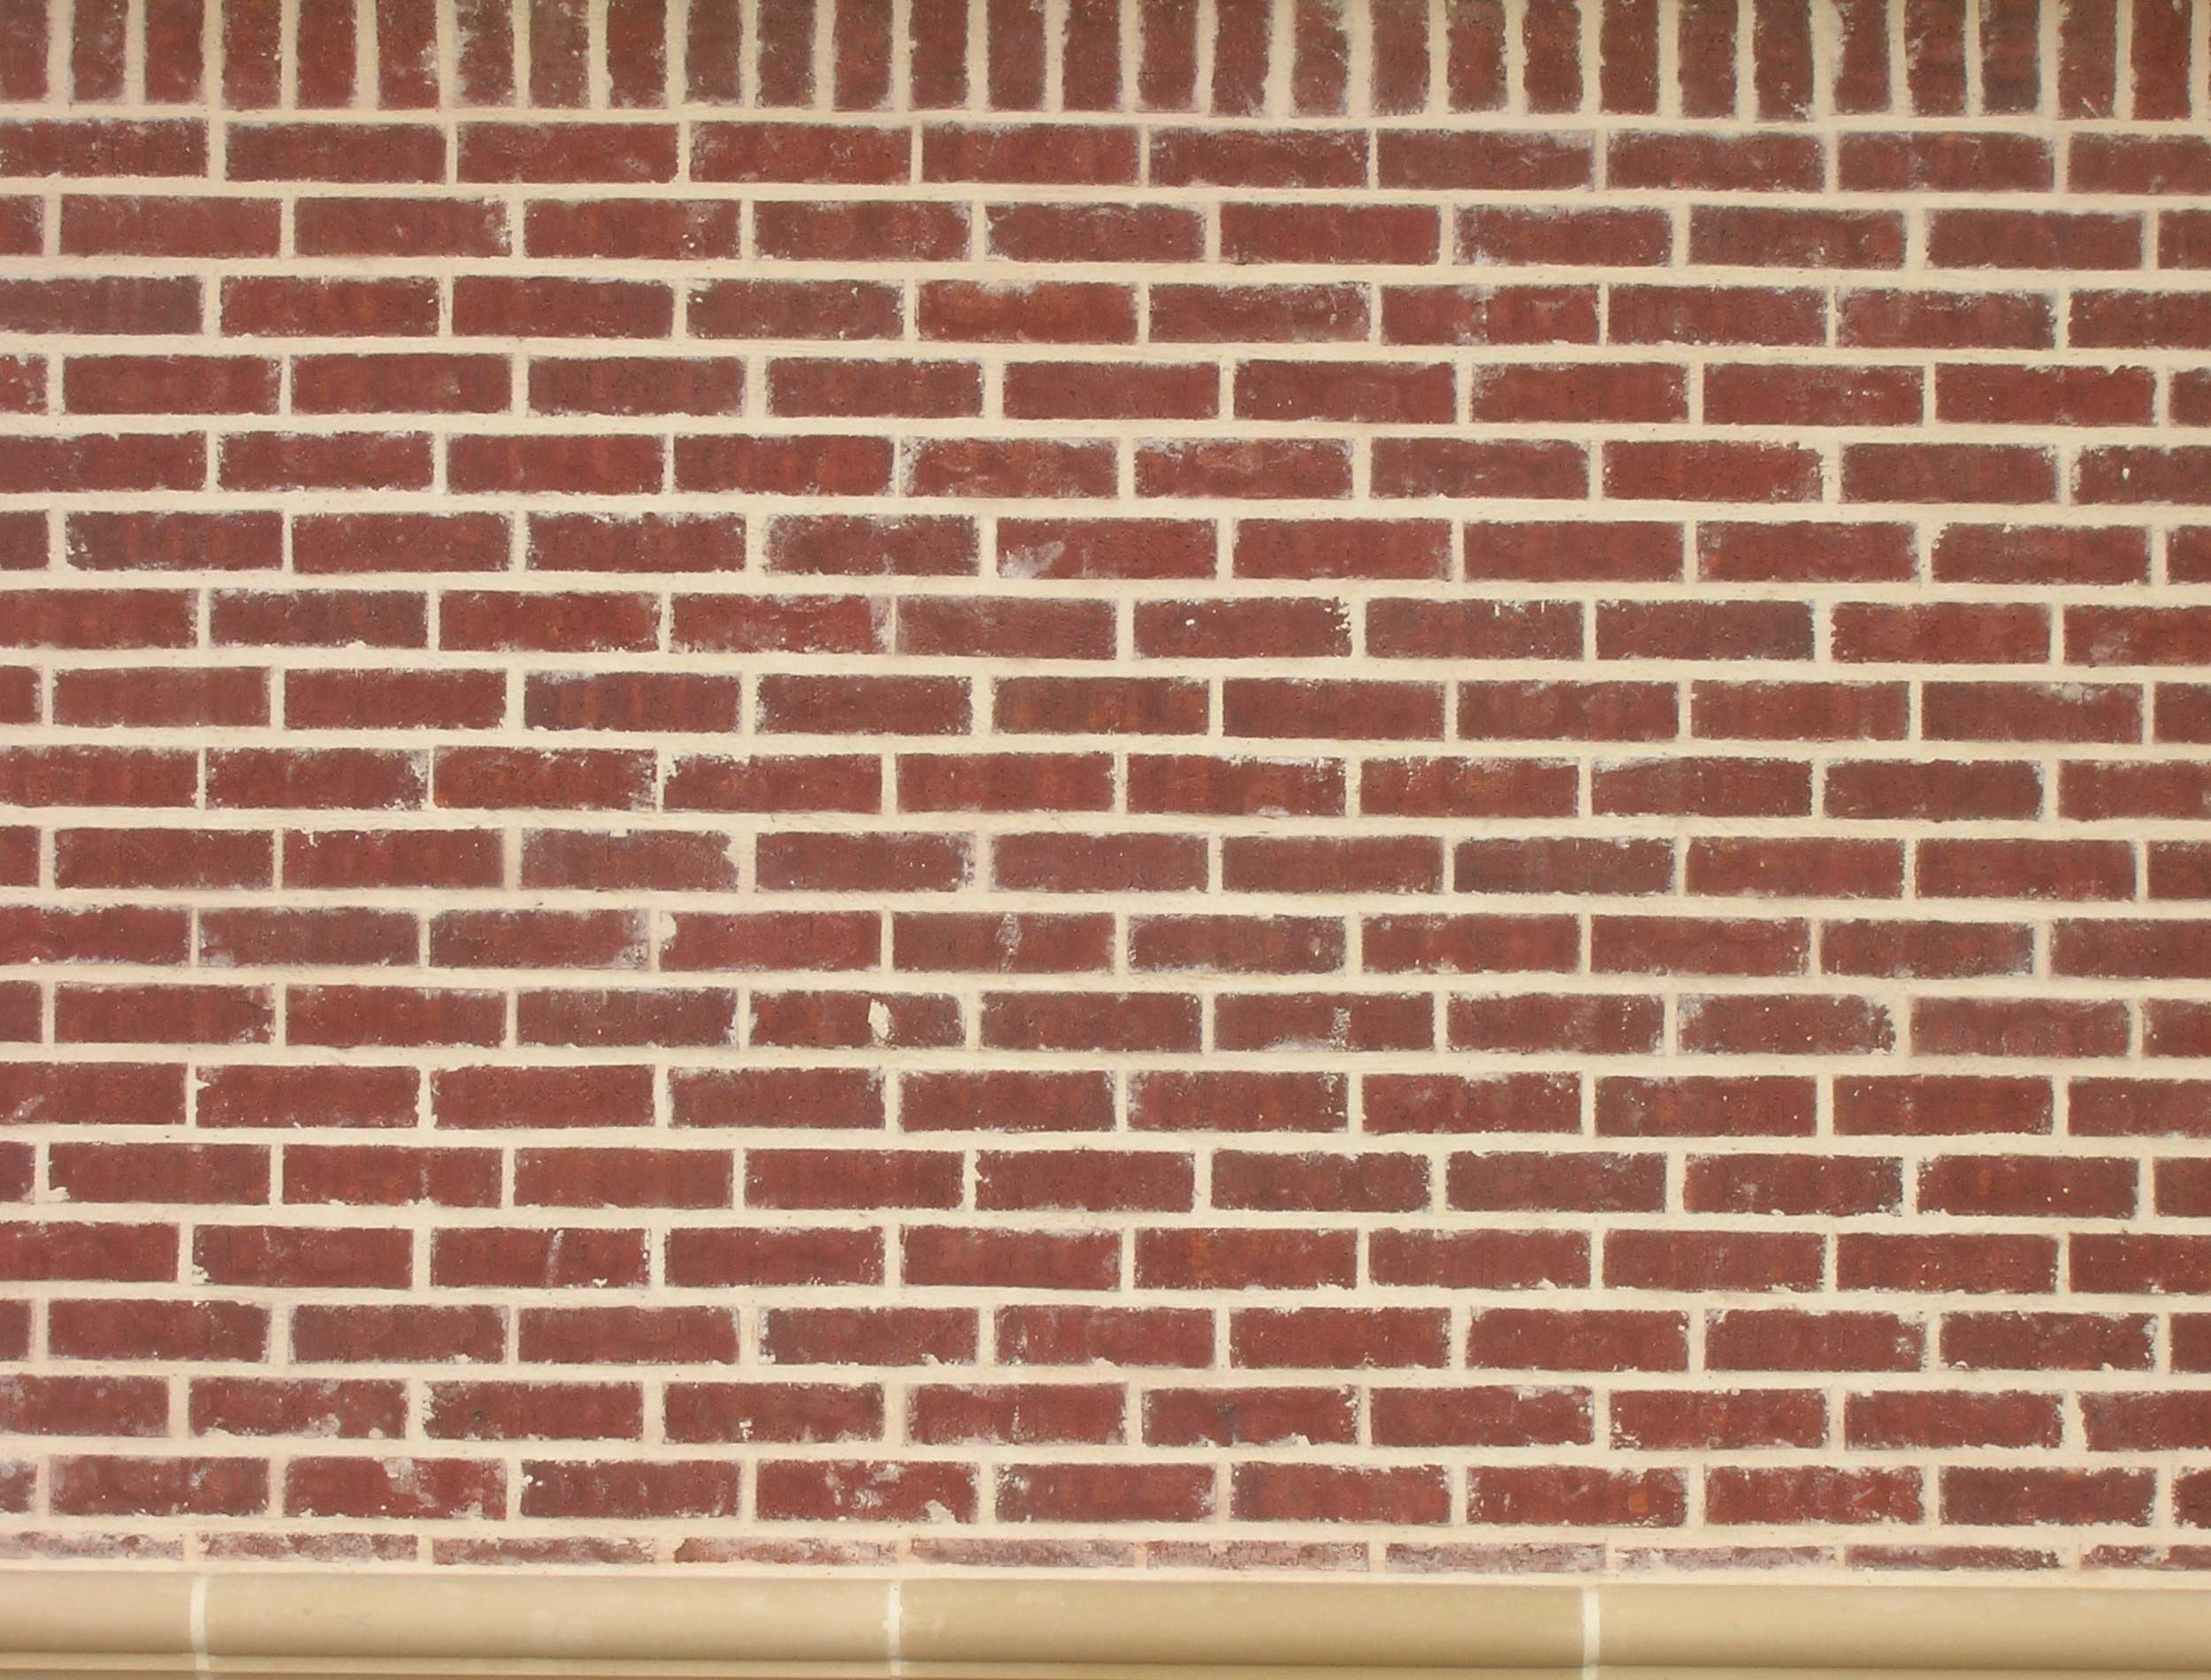 Cbc king size red cambridge packer brick name of brick cambridge geenschuldenfo Choice Image